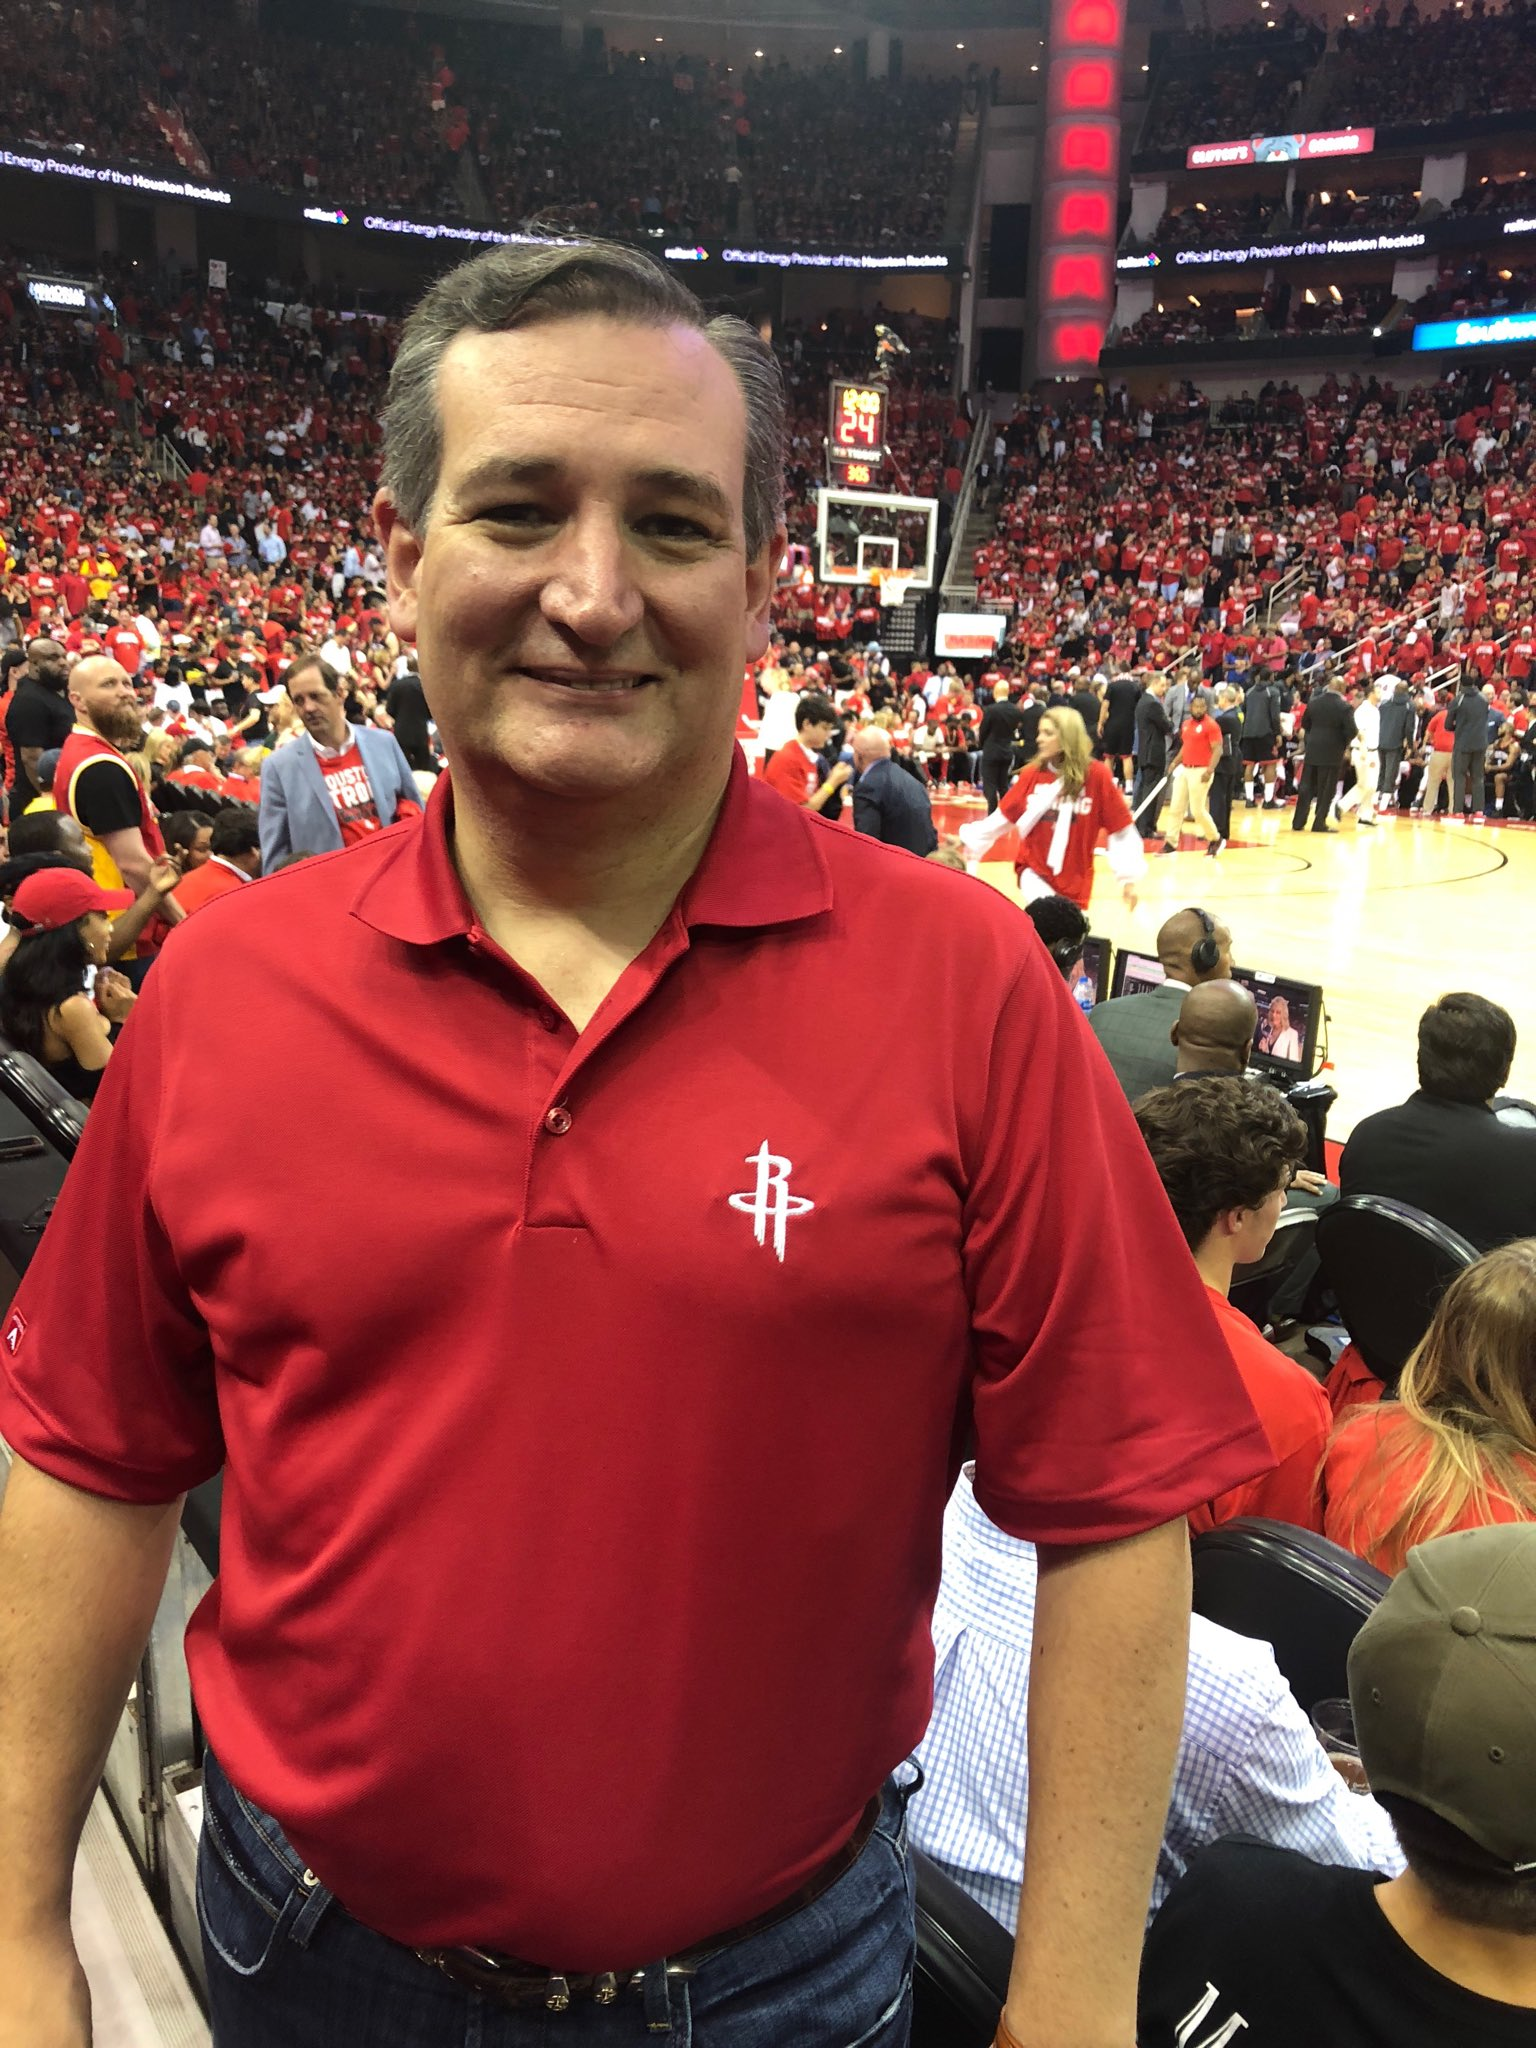 At the @HoustonRockets game, end of Q3. GO ROCKETS!!  #SantaFeStrong https://t.co/KM2I6o8mND